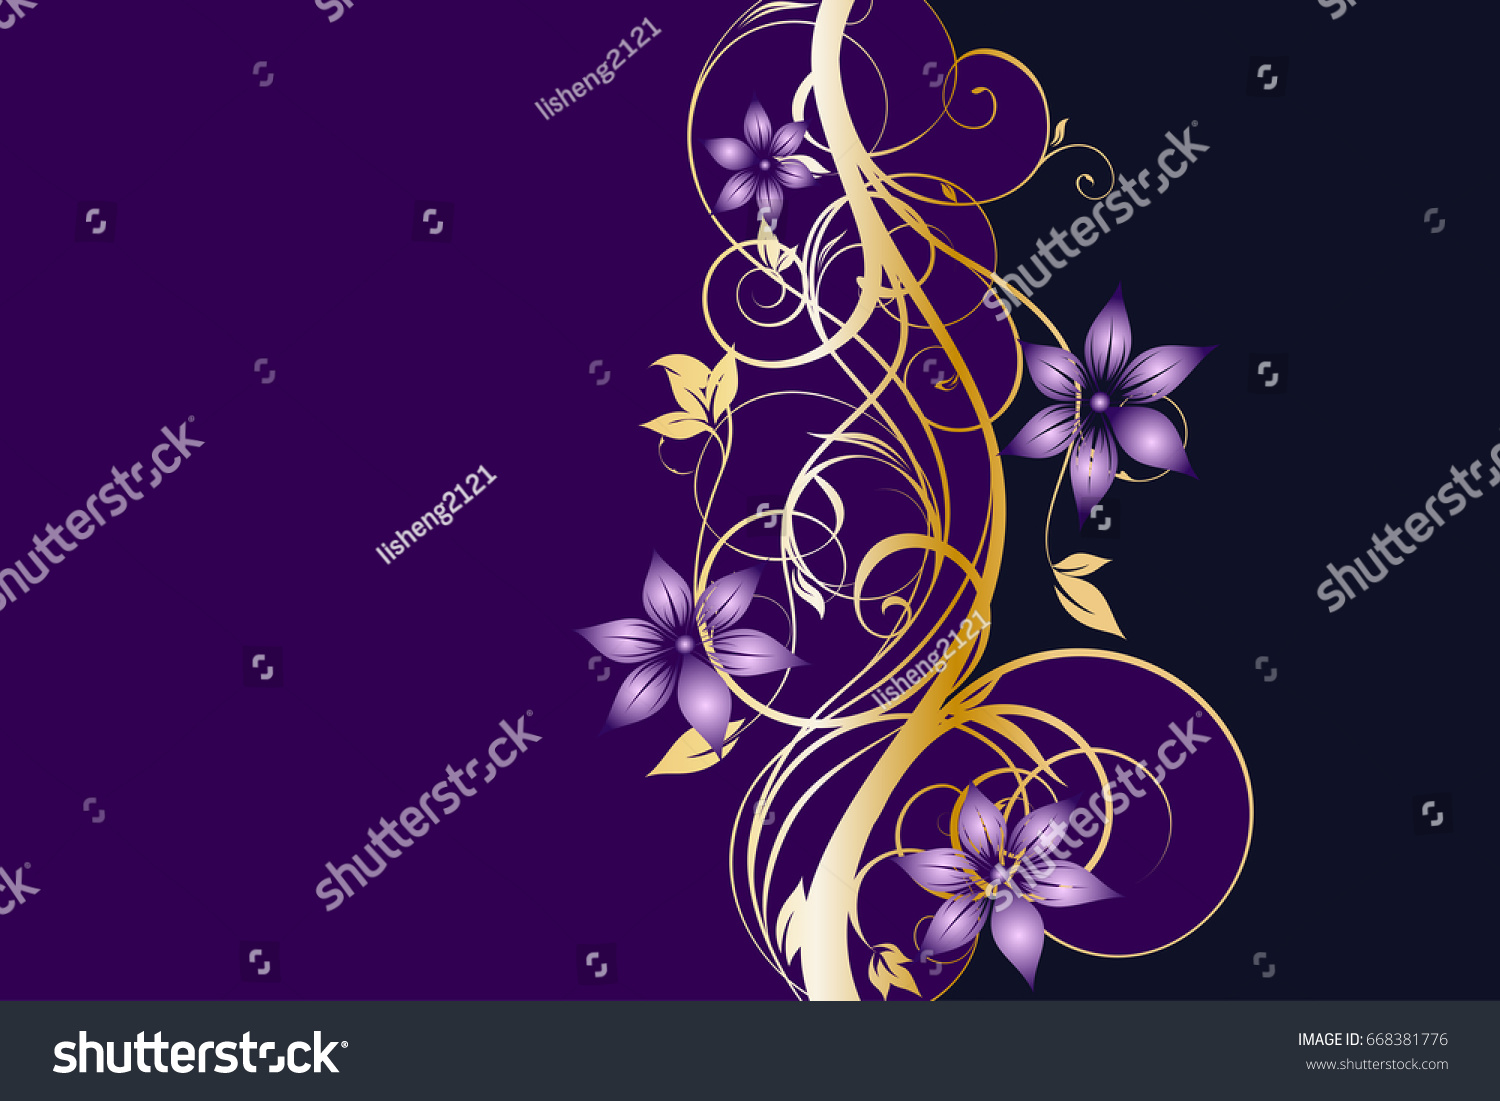 Purple Floral Background Images